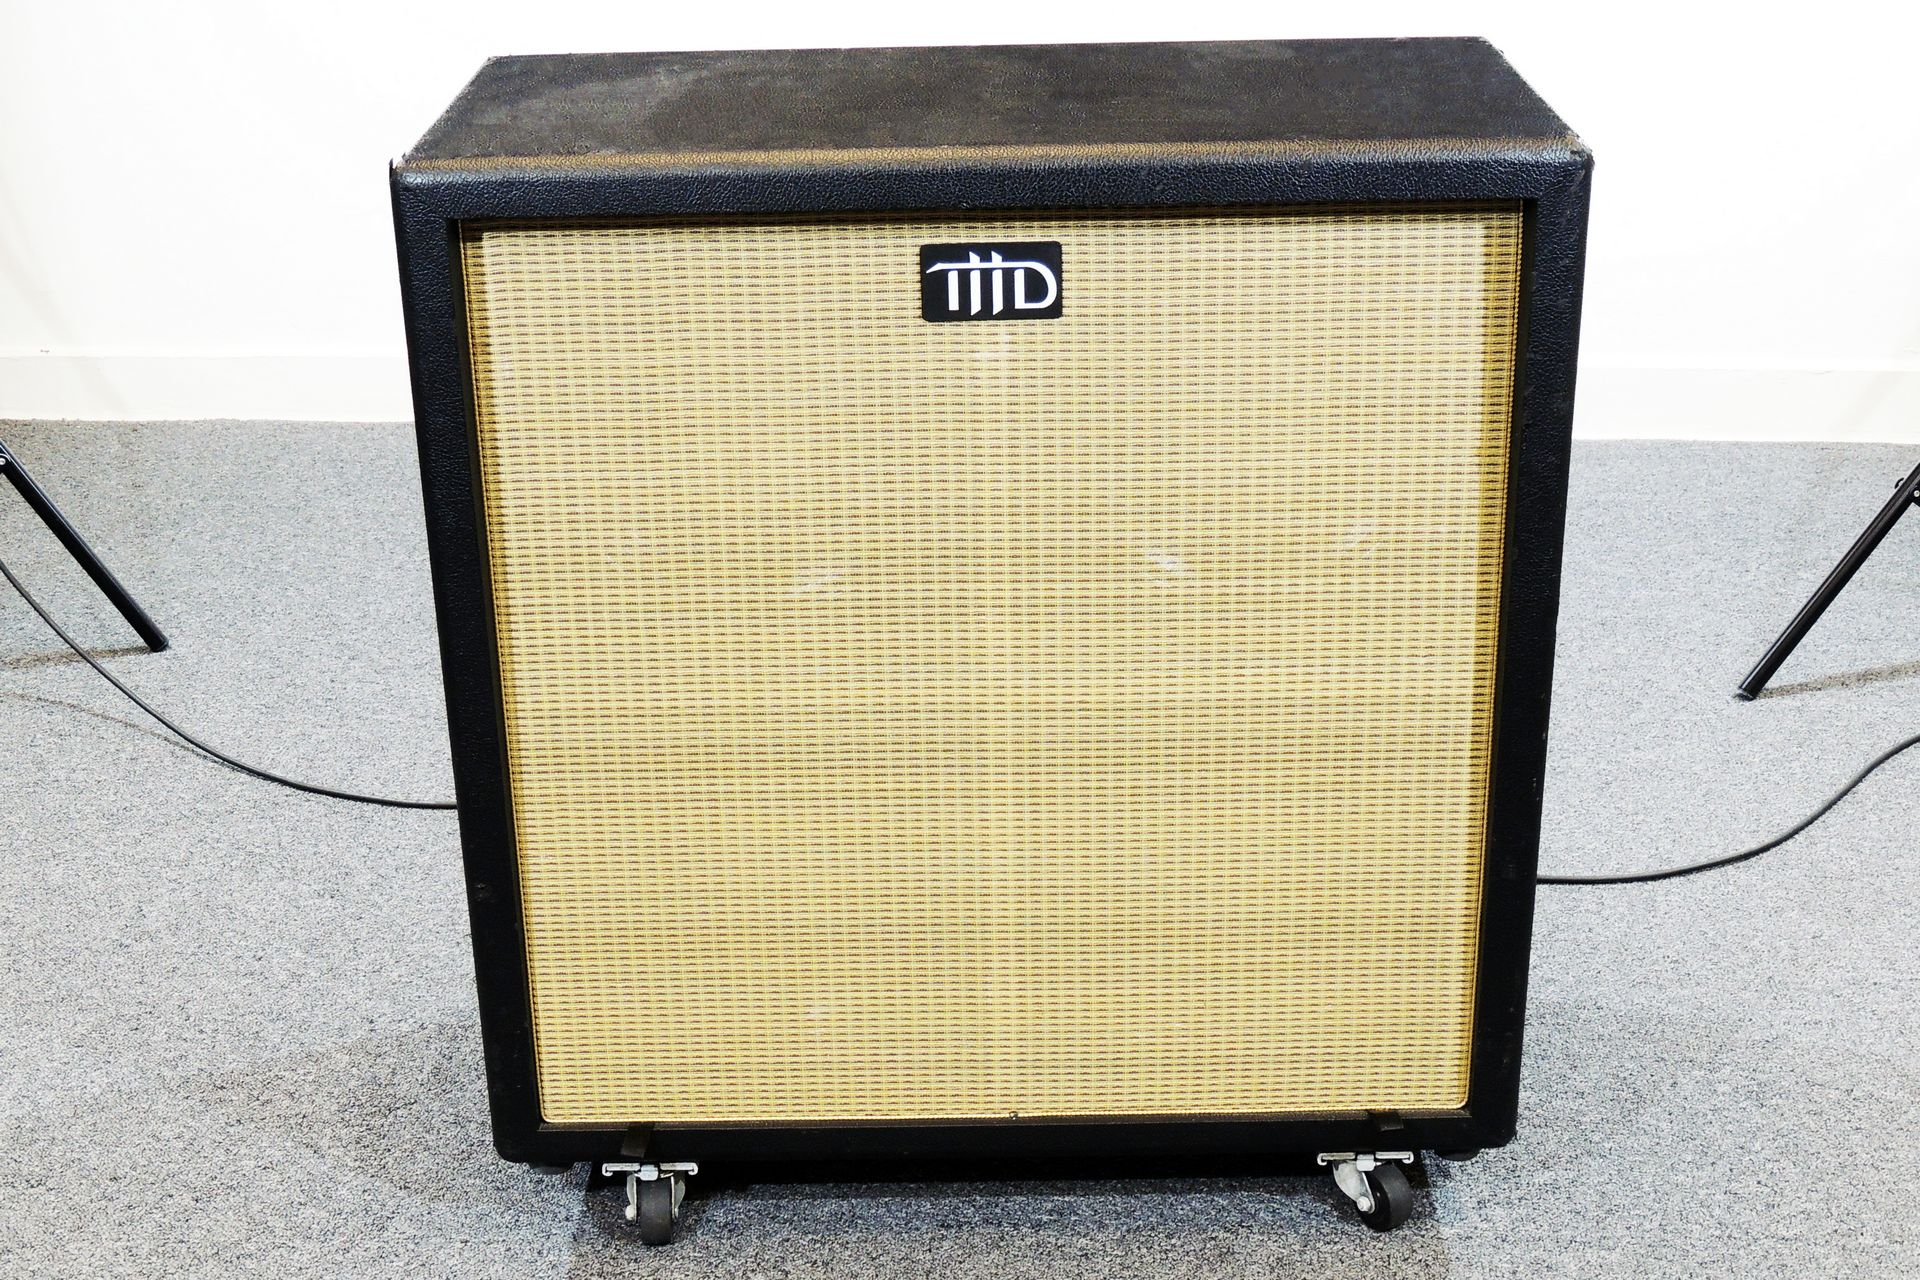 THD 4x12 guitar cab for sale at Plasma Music